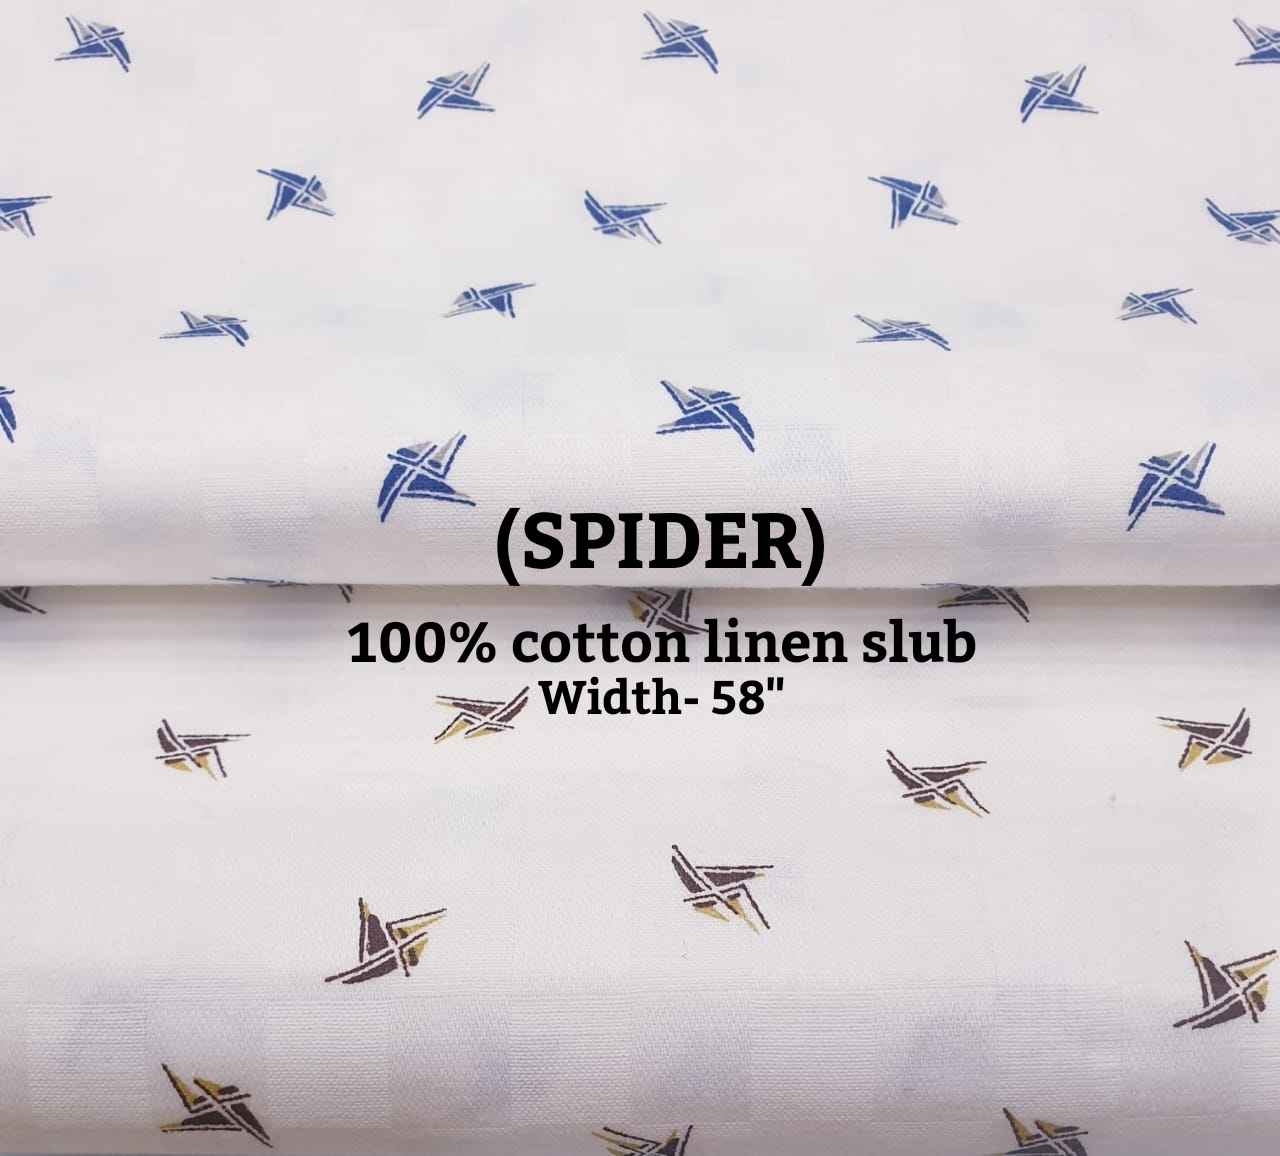 Spider 100% cotton linen slub